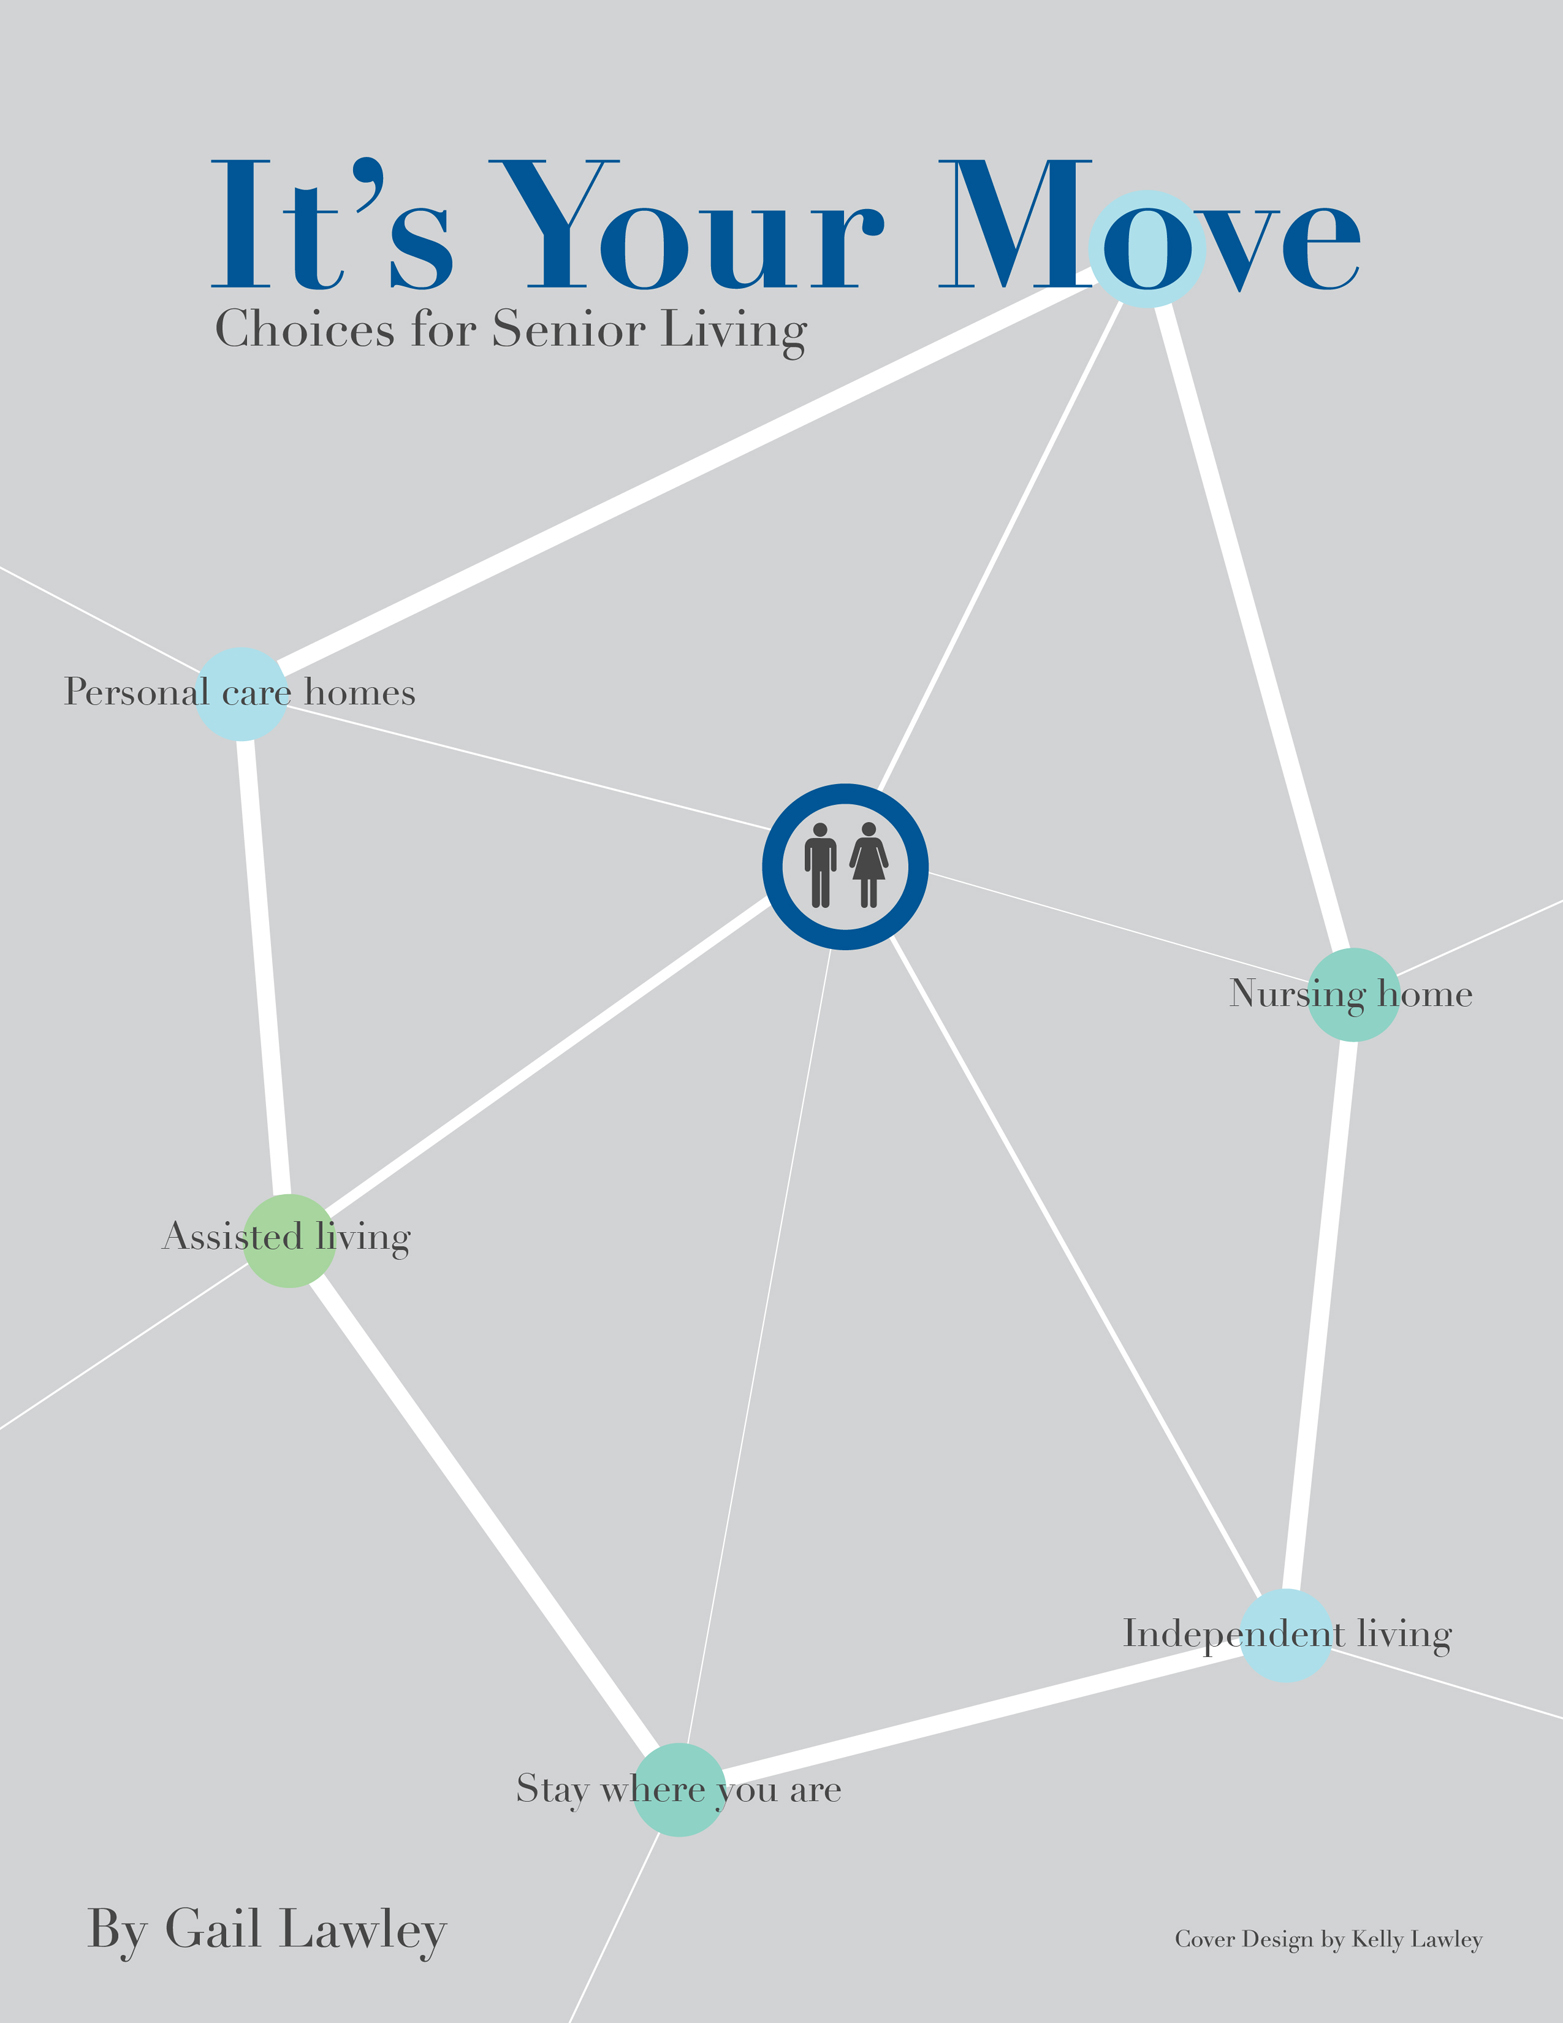 It's Your Move: Choices for Senior Living by Gail Lawley